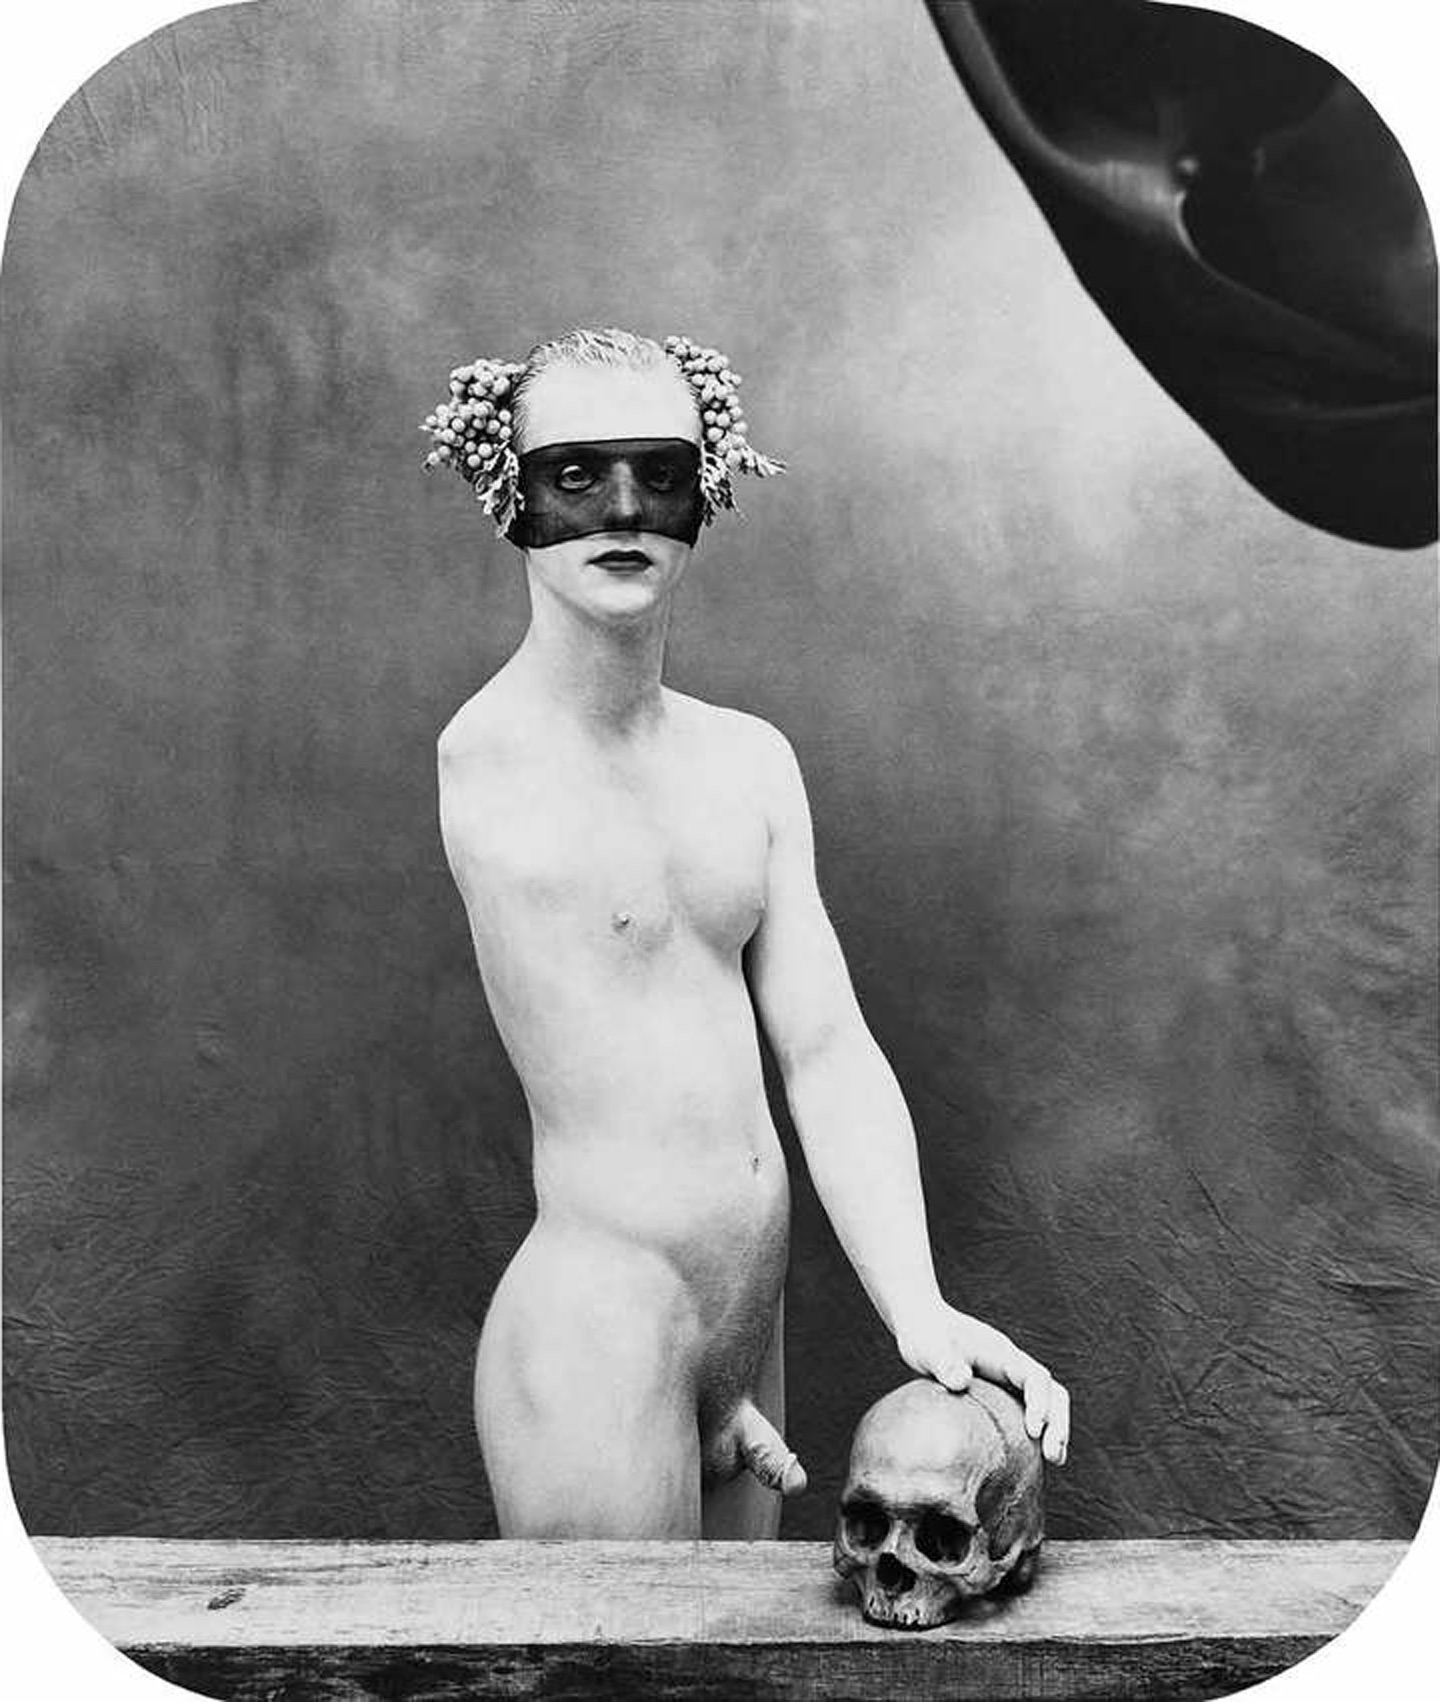 Joel-Peter Witkin: Songs of Experience, Limited Edition, and Songs of Innocence, Limited Edition (with platinum prints)